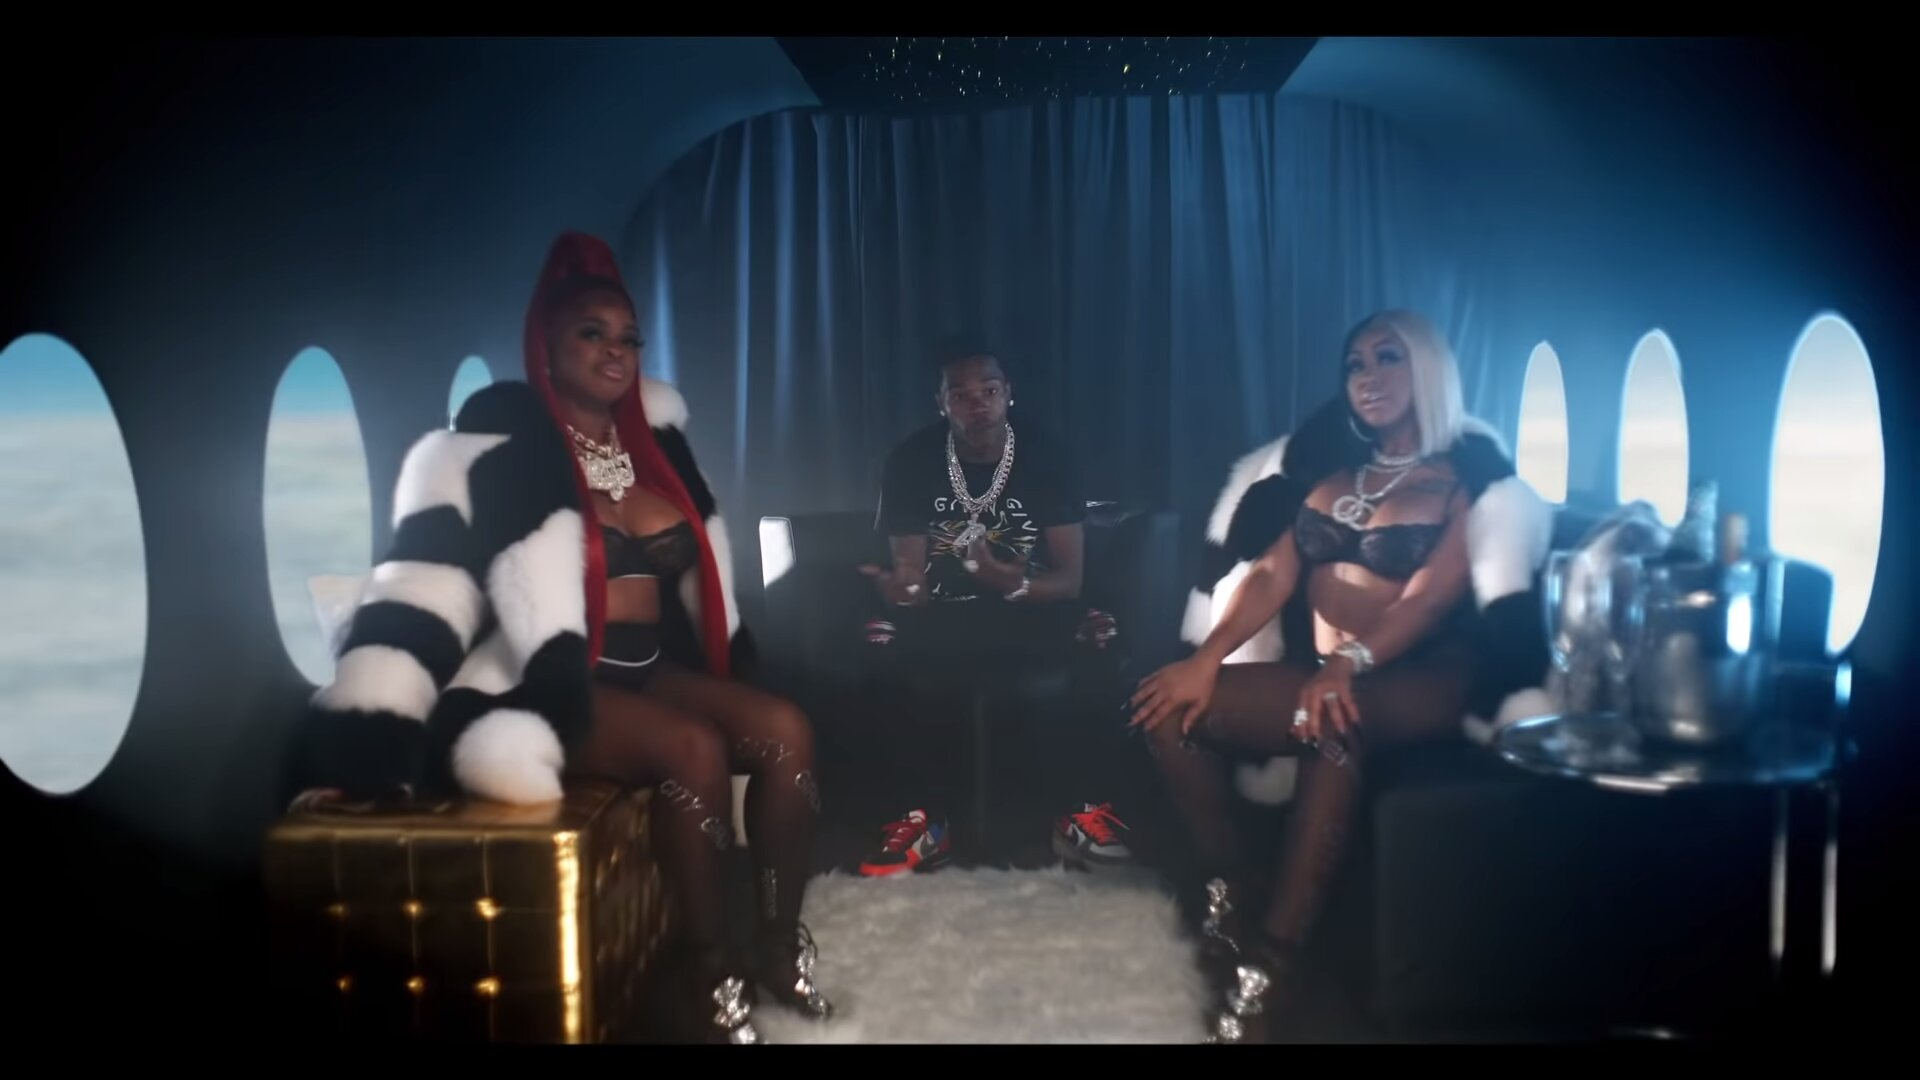 City Girls – Flewed Out (Alternative Video) ft. Lil Baby